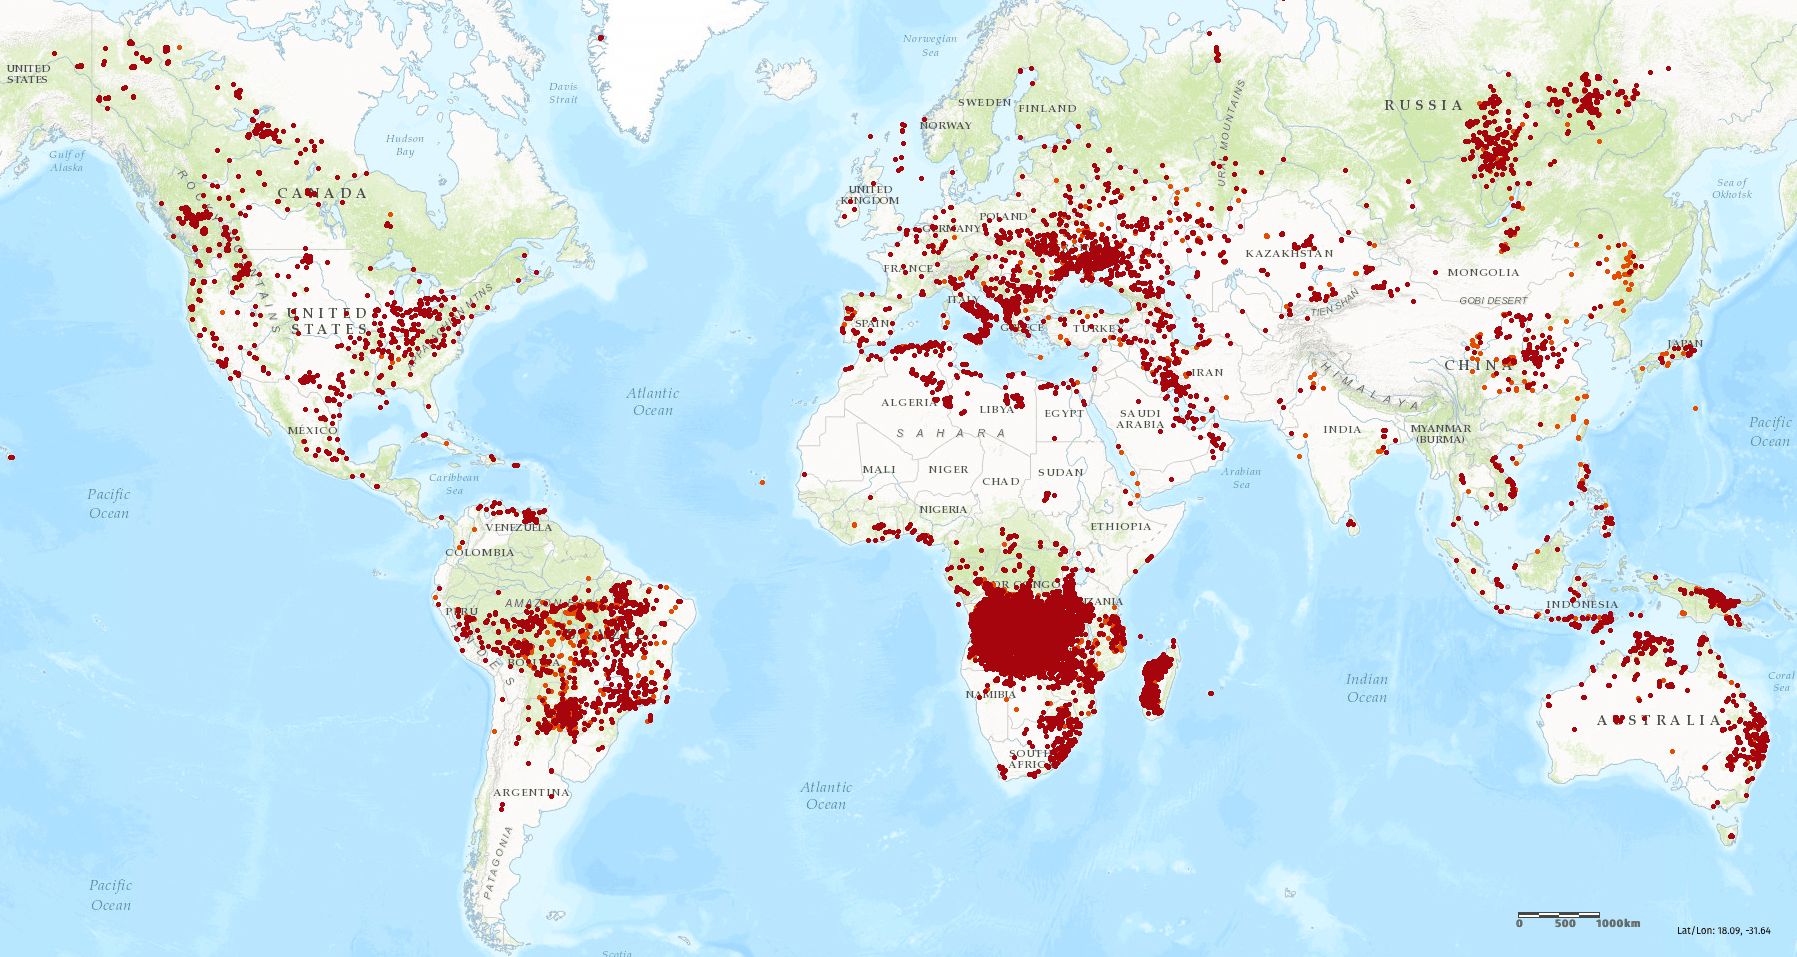 the world is on fire - an overview of current wildfires